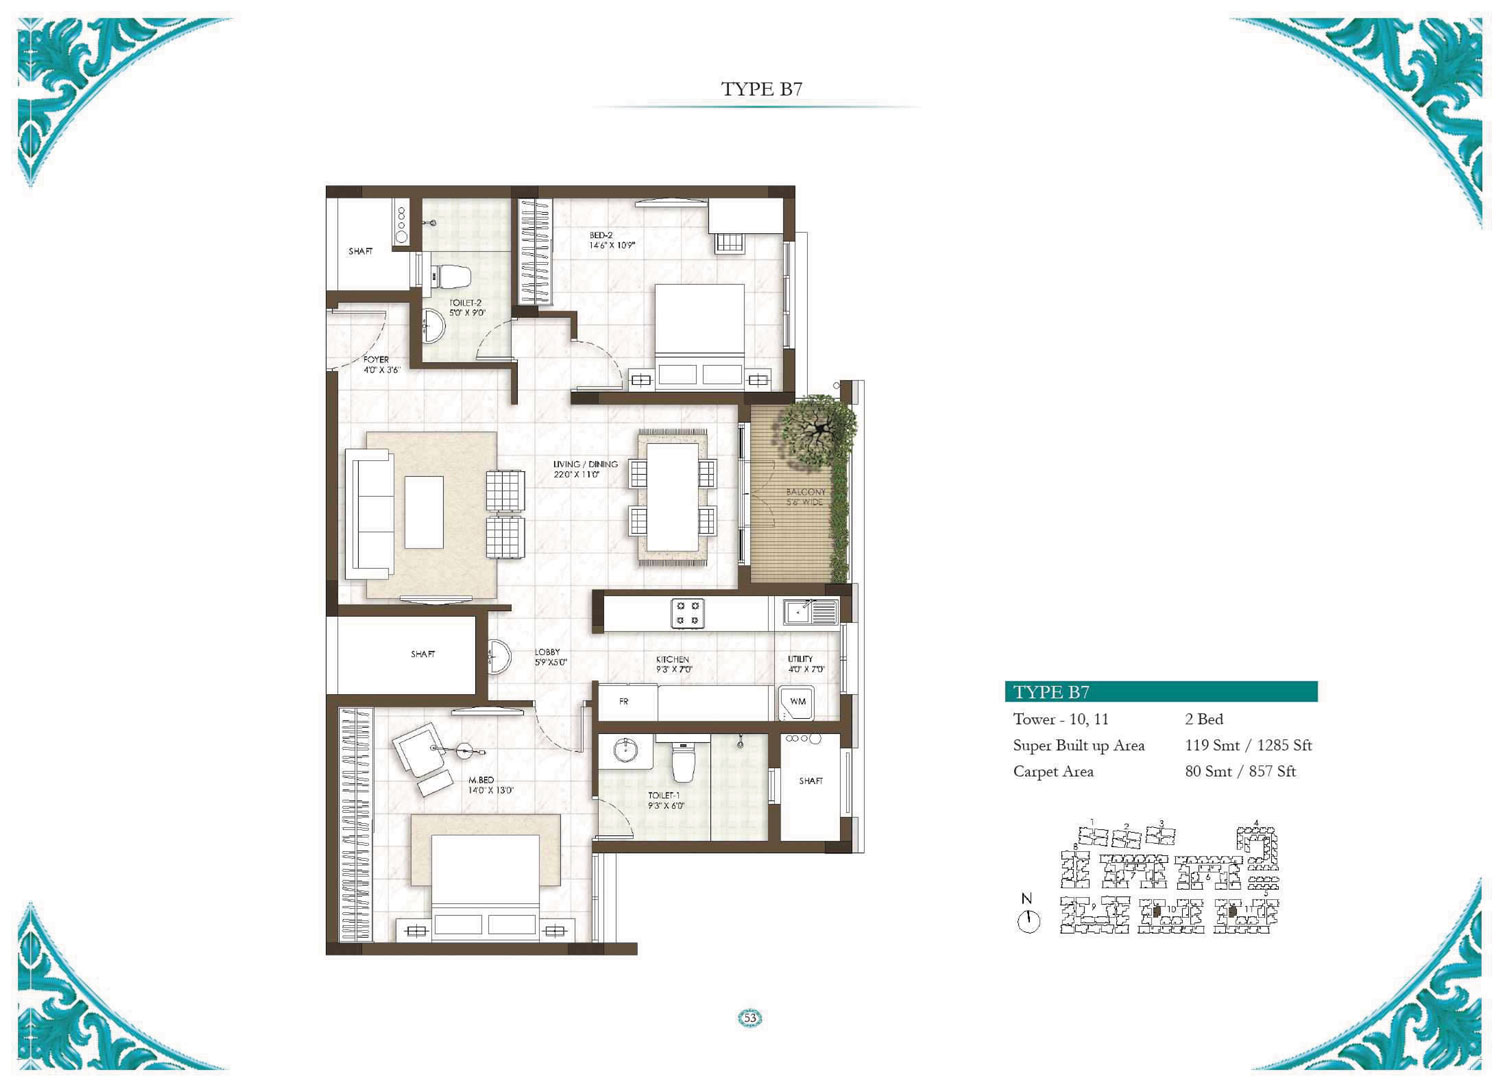 Type B7 - 1 Bed - 1285 Sq Ft